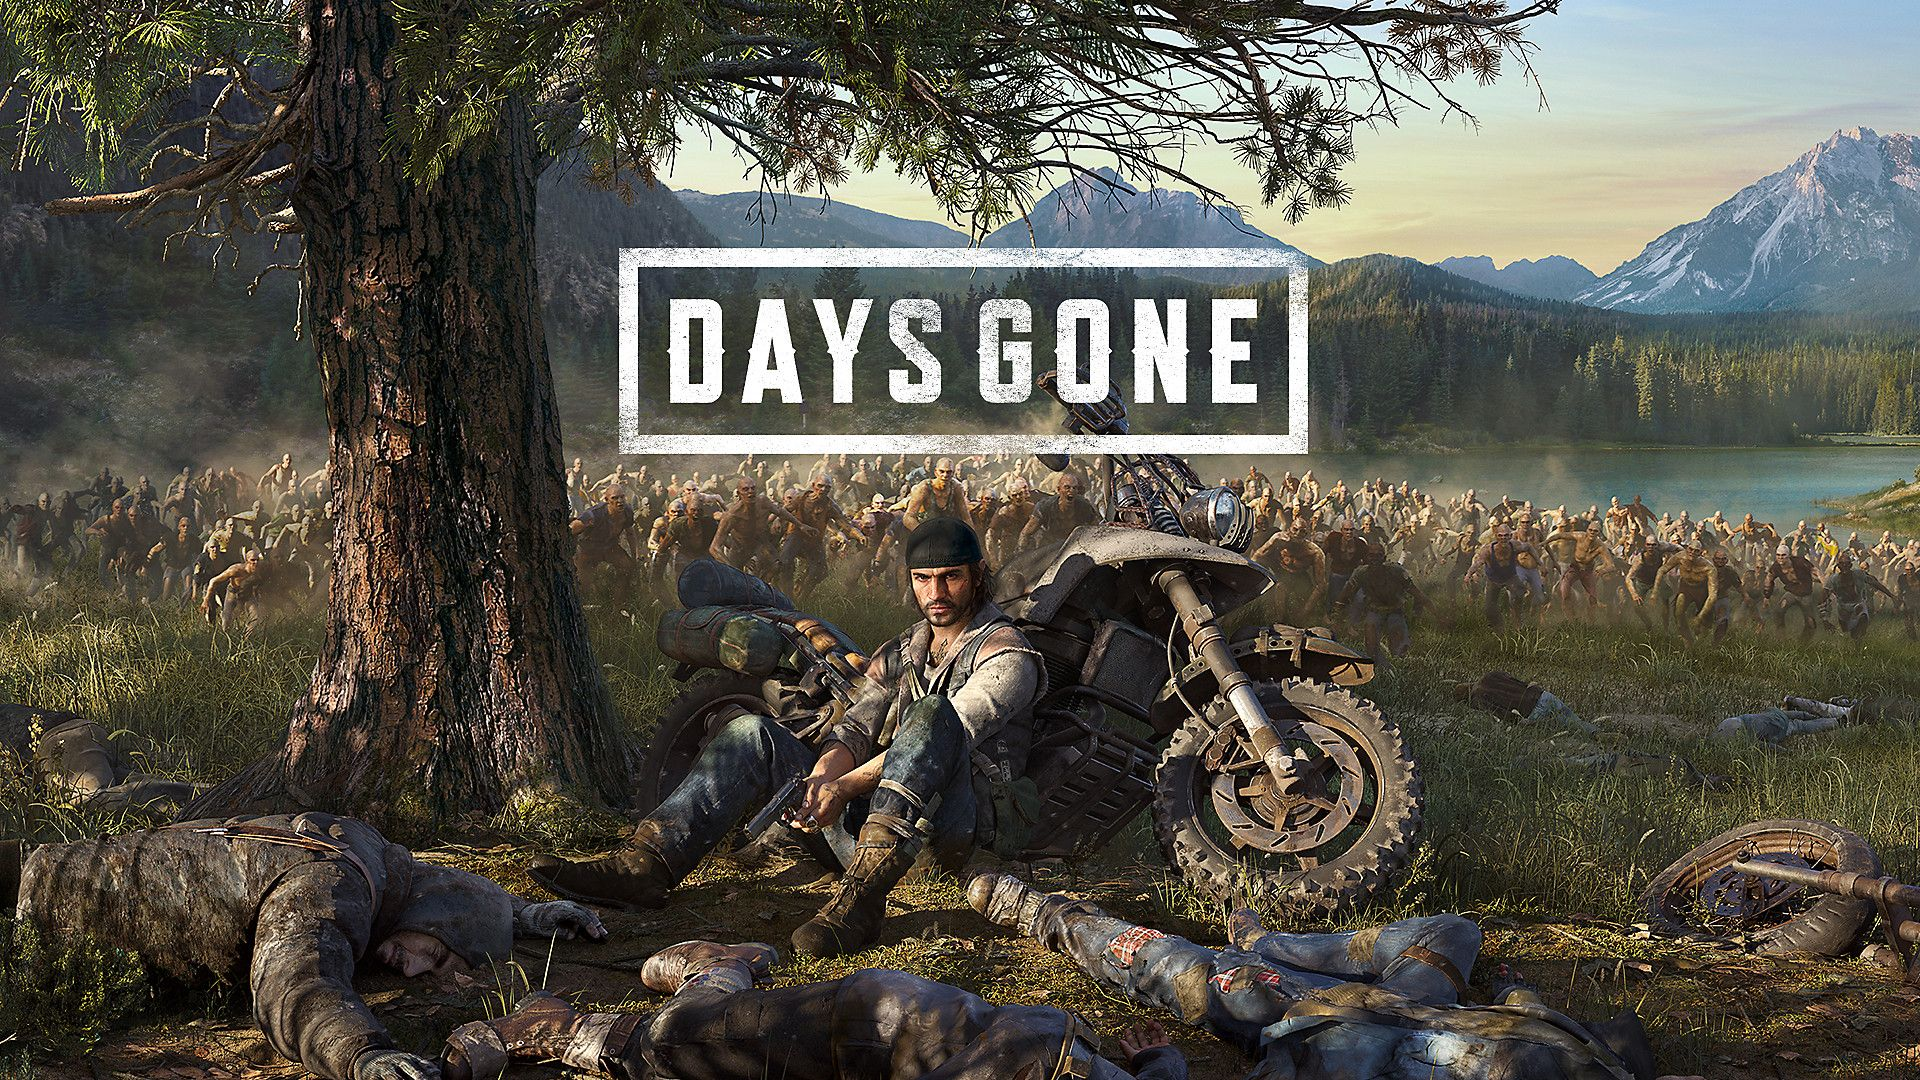 Days Gone' 1 07 Update: Patch Fixes Crashing on PS4 and